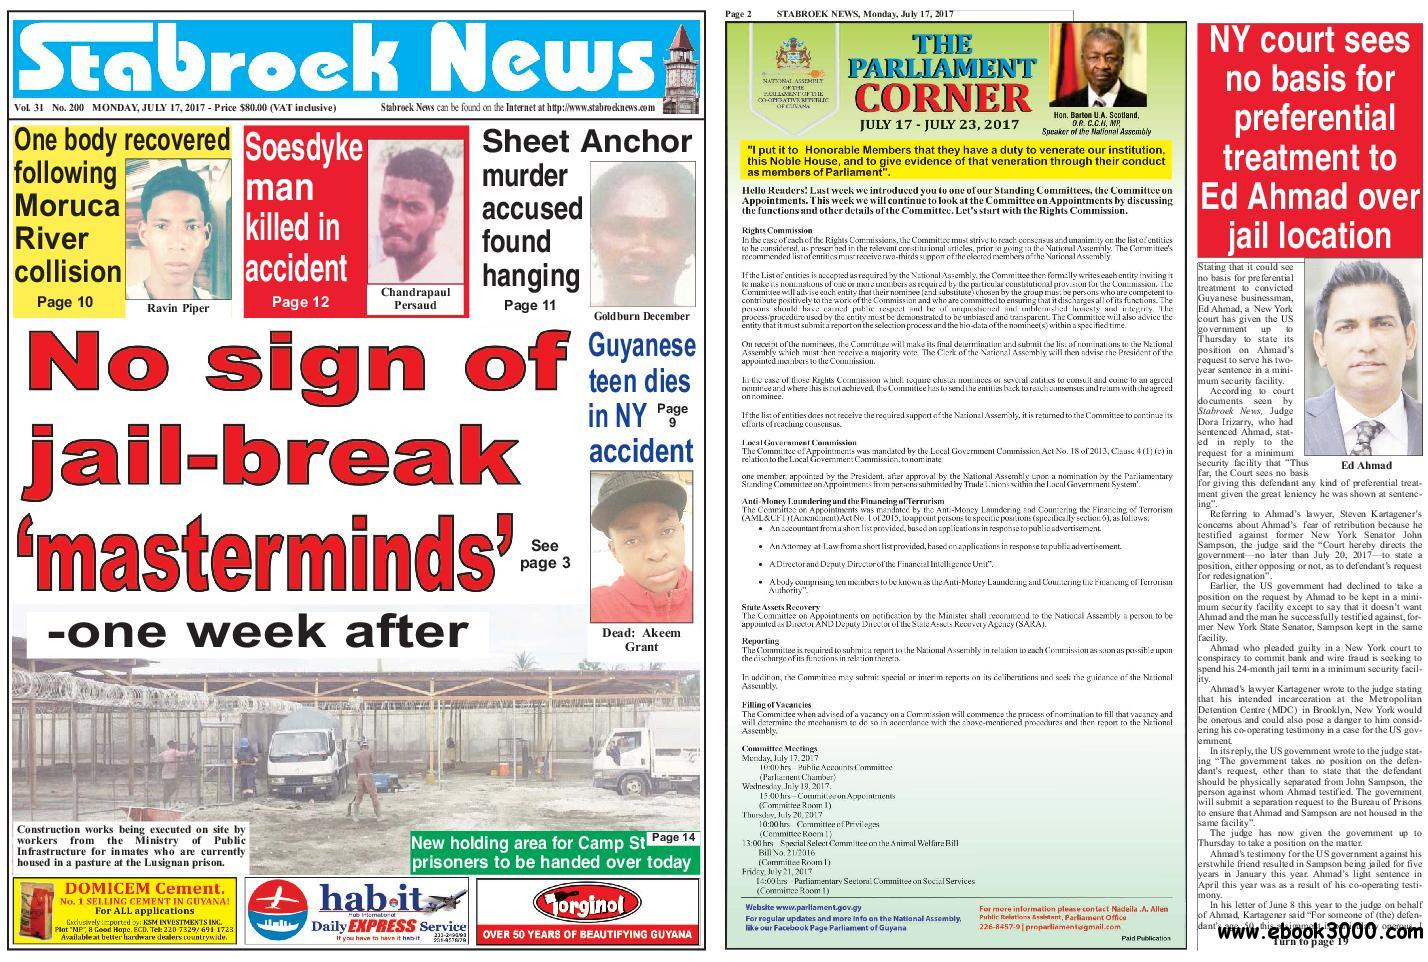 Stabroek News - July 17, 2017